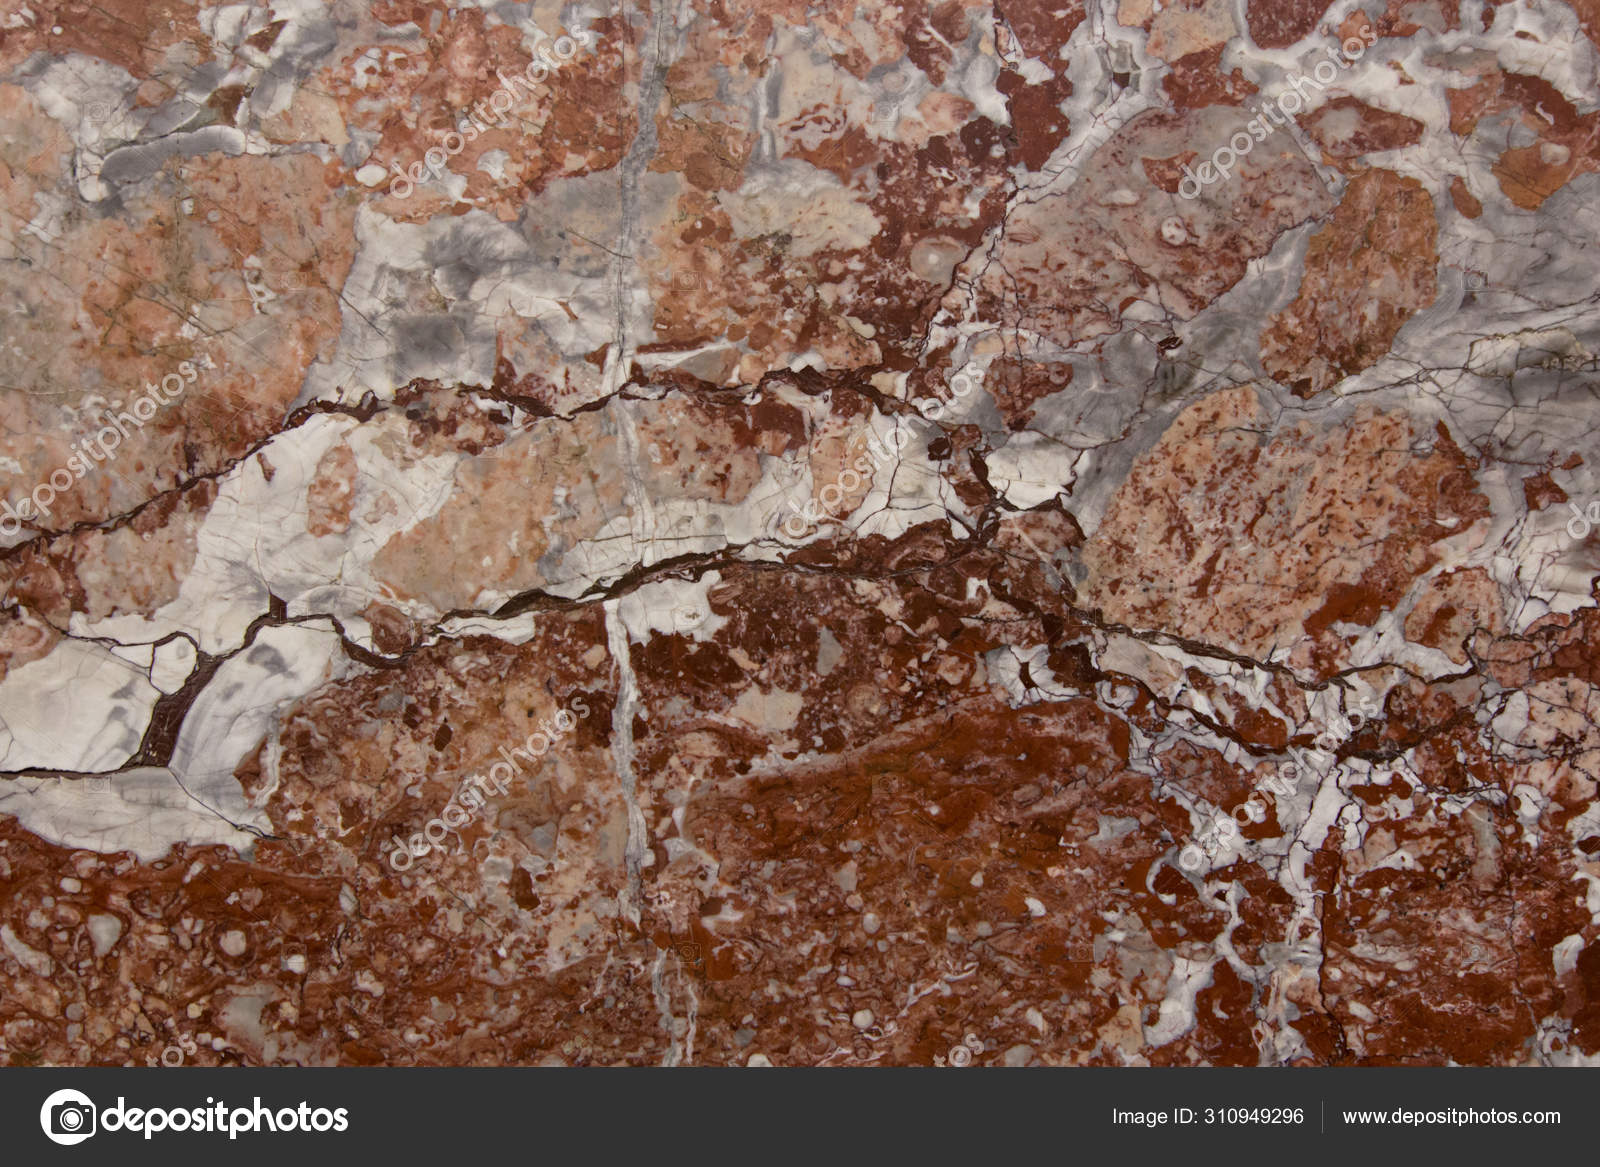 Beige Red Brown Abstract Marble Texture Background Stock Photo C Viktor108 310949296